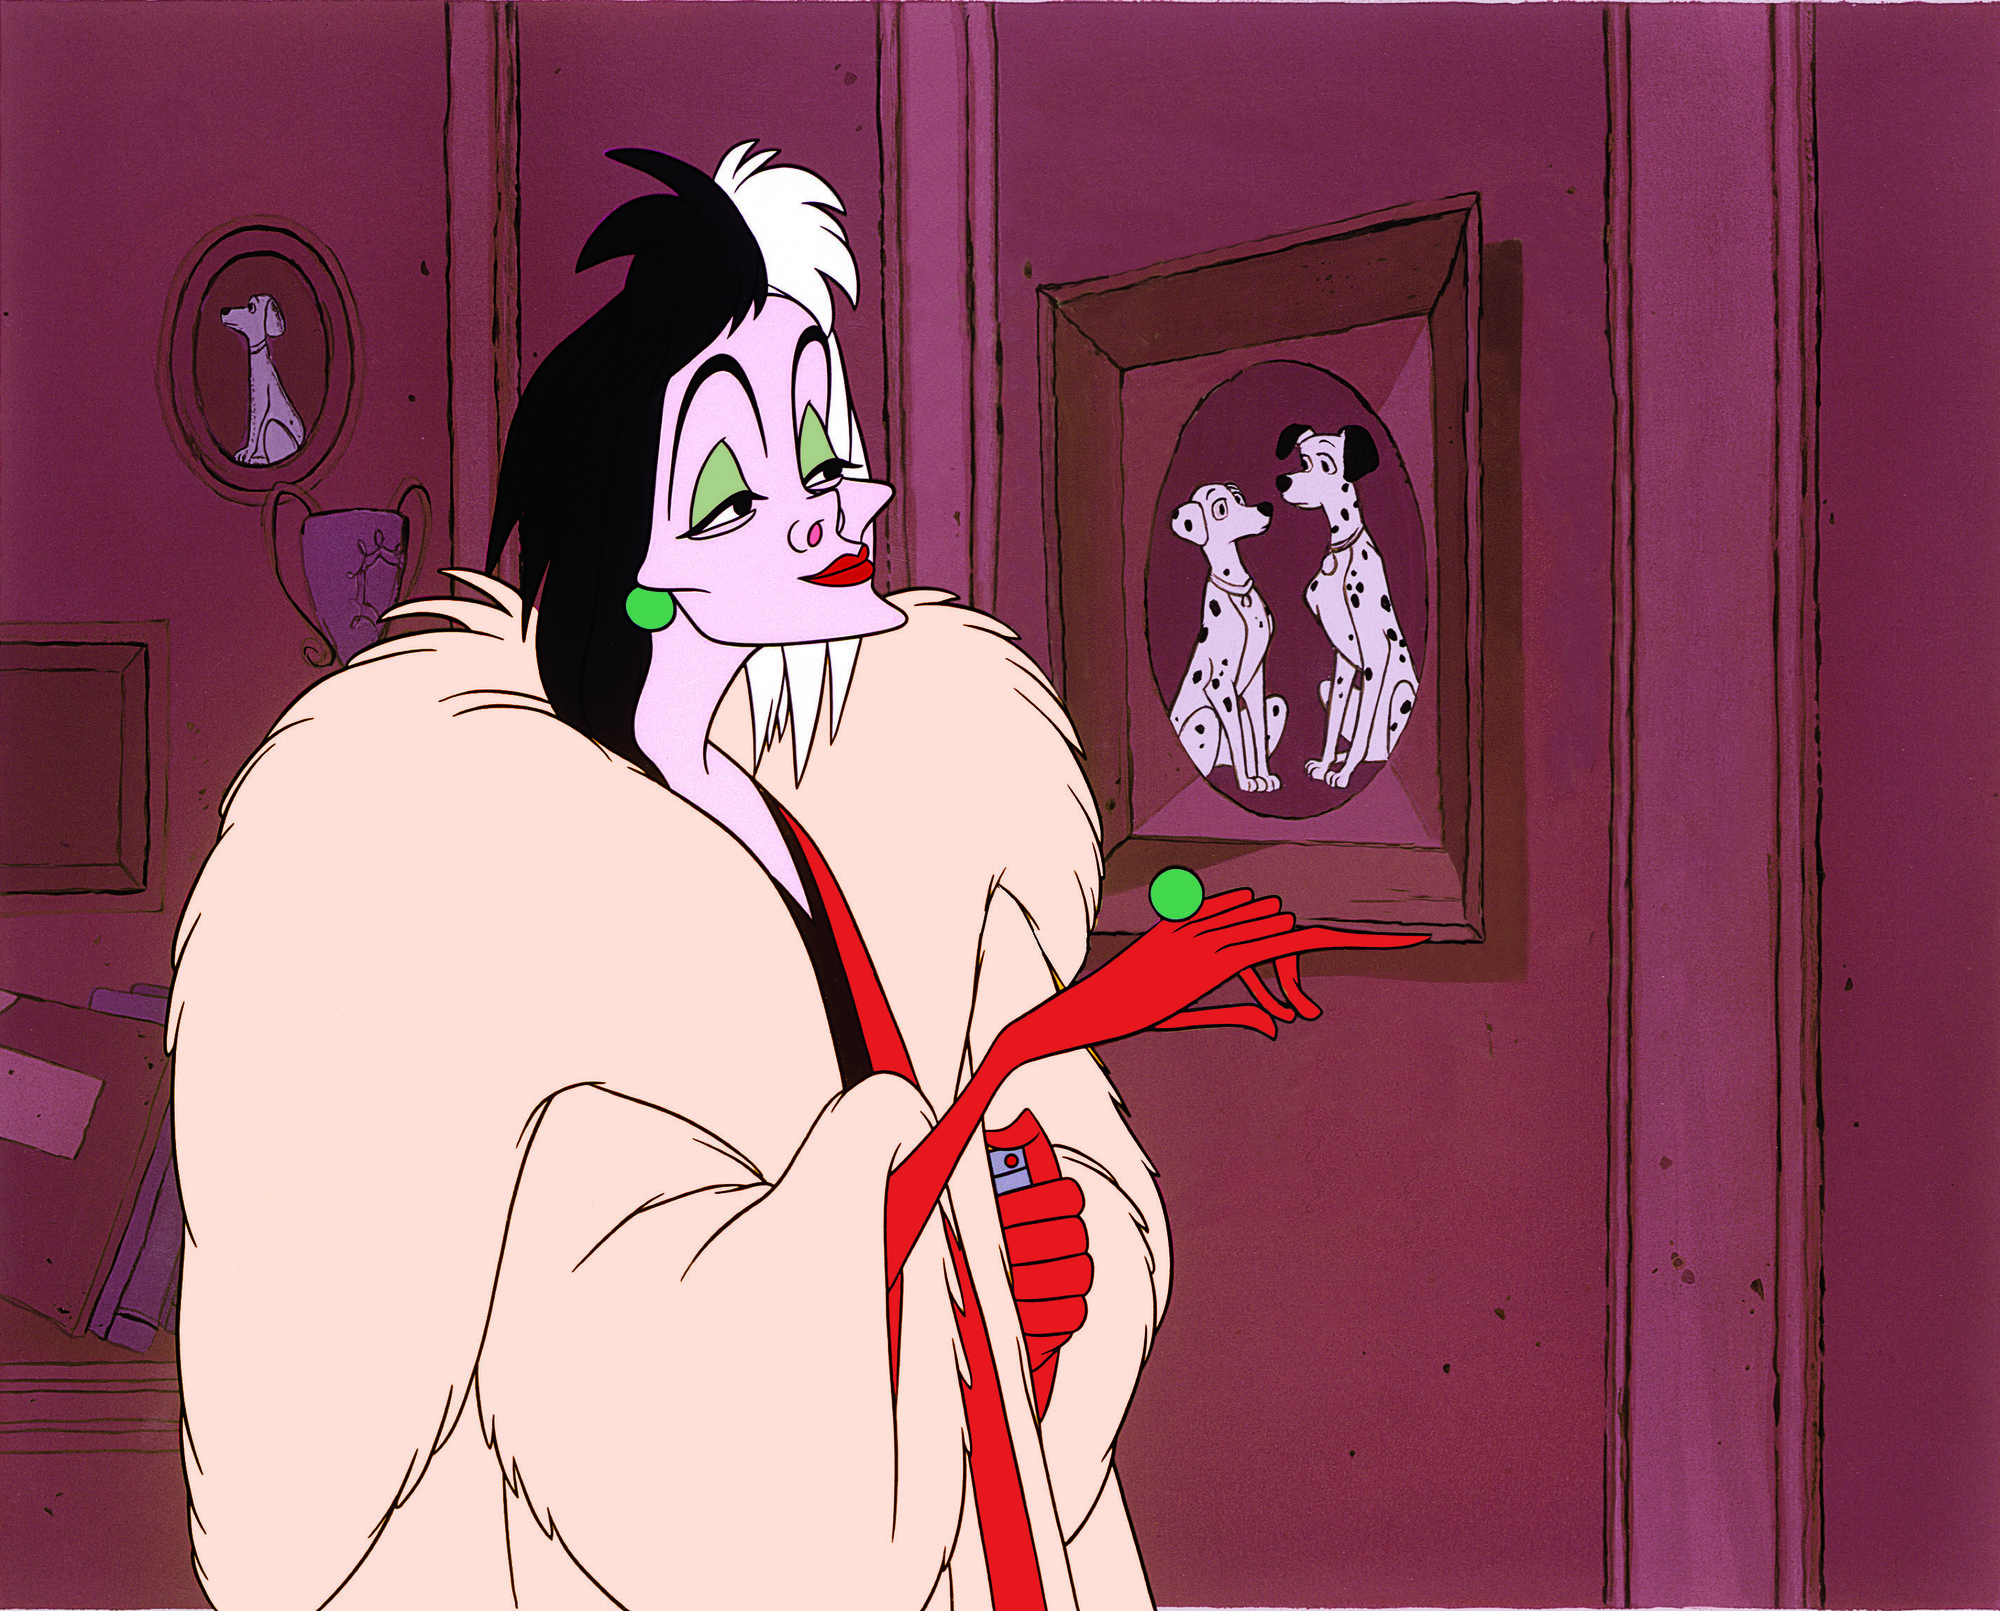 Cruella De Vil has her eyes on 'One Hundred and One Dalmatians.'